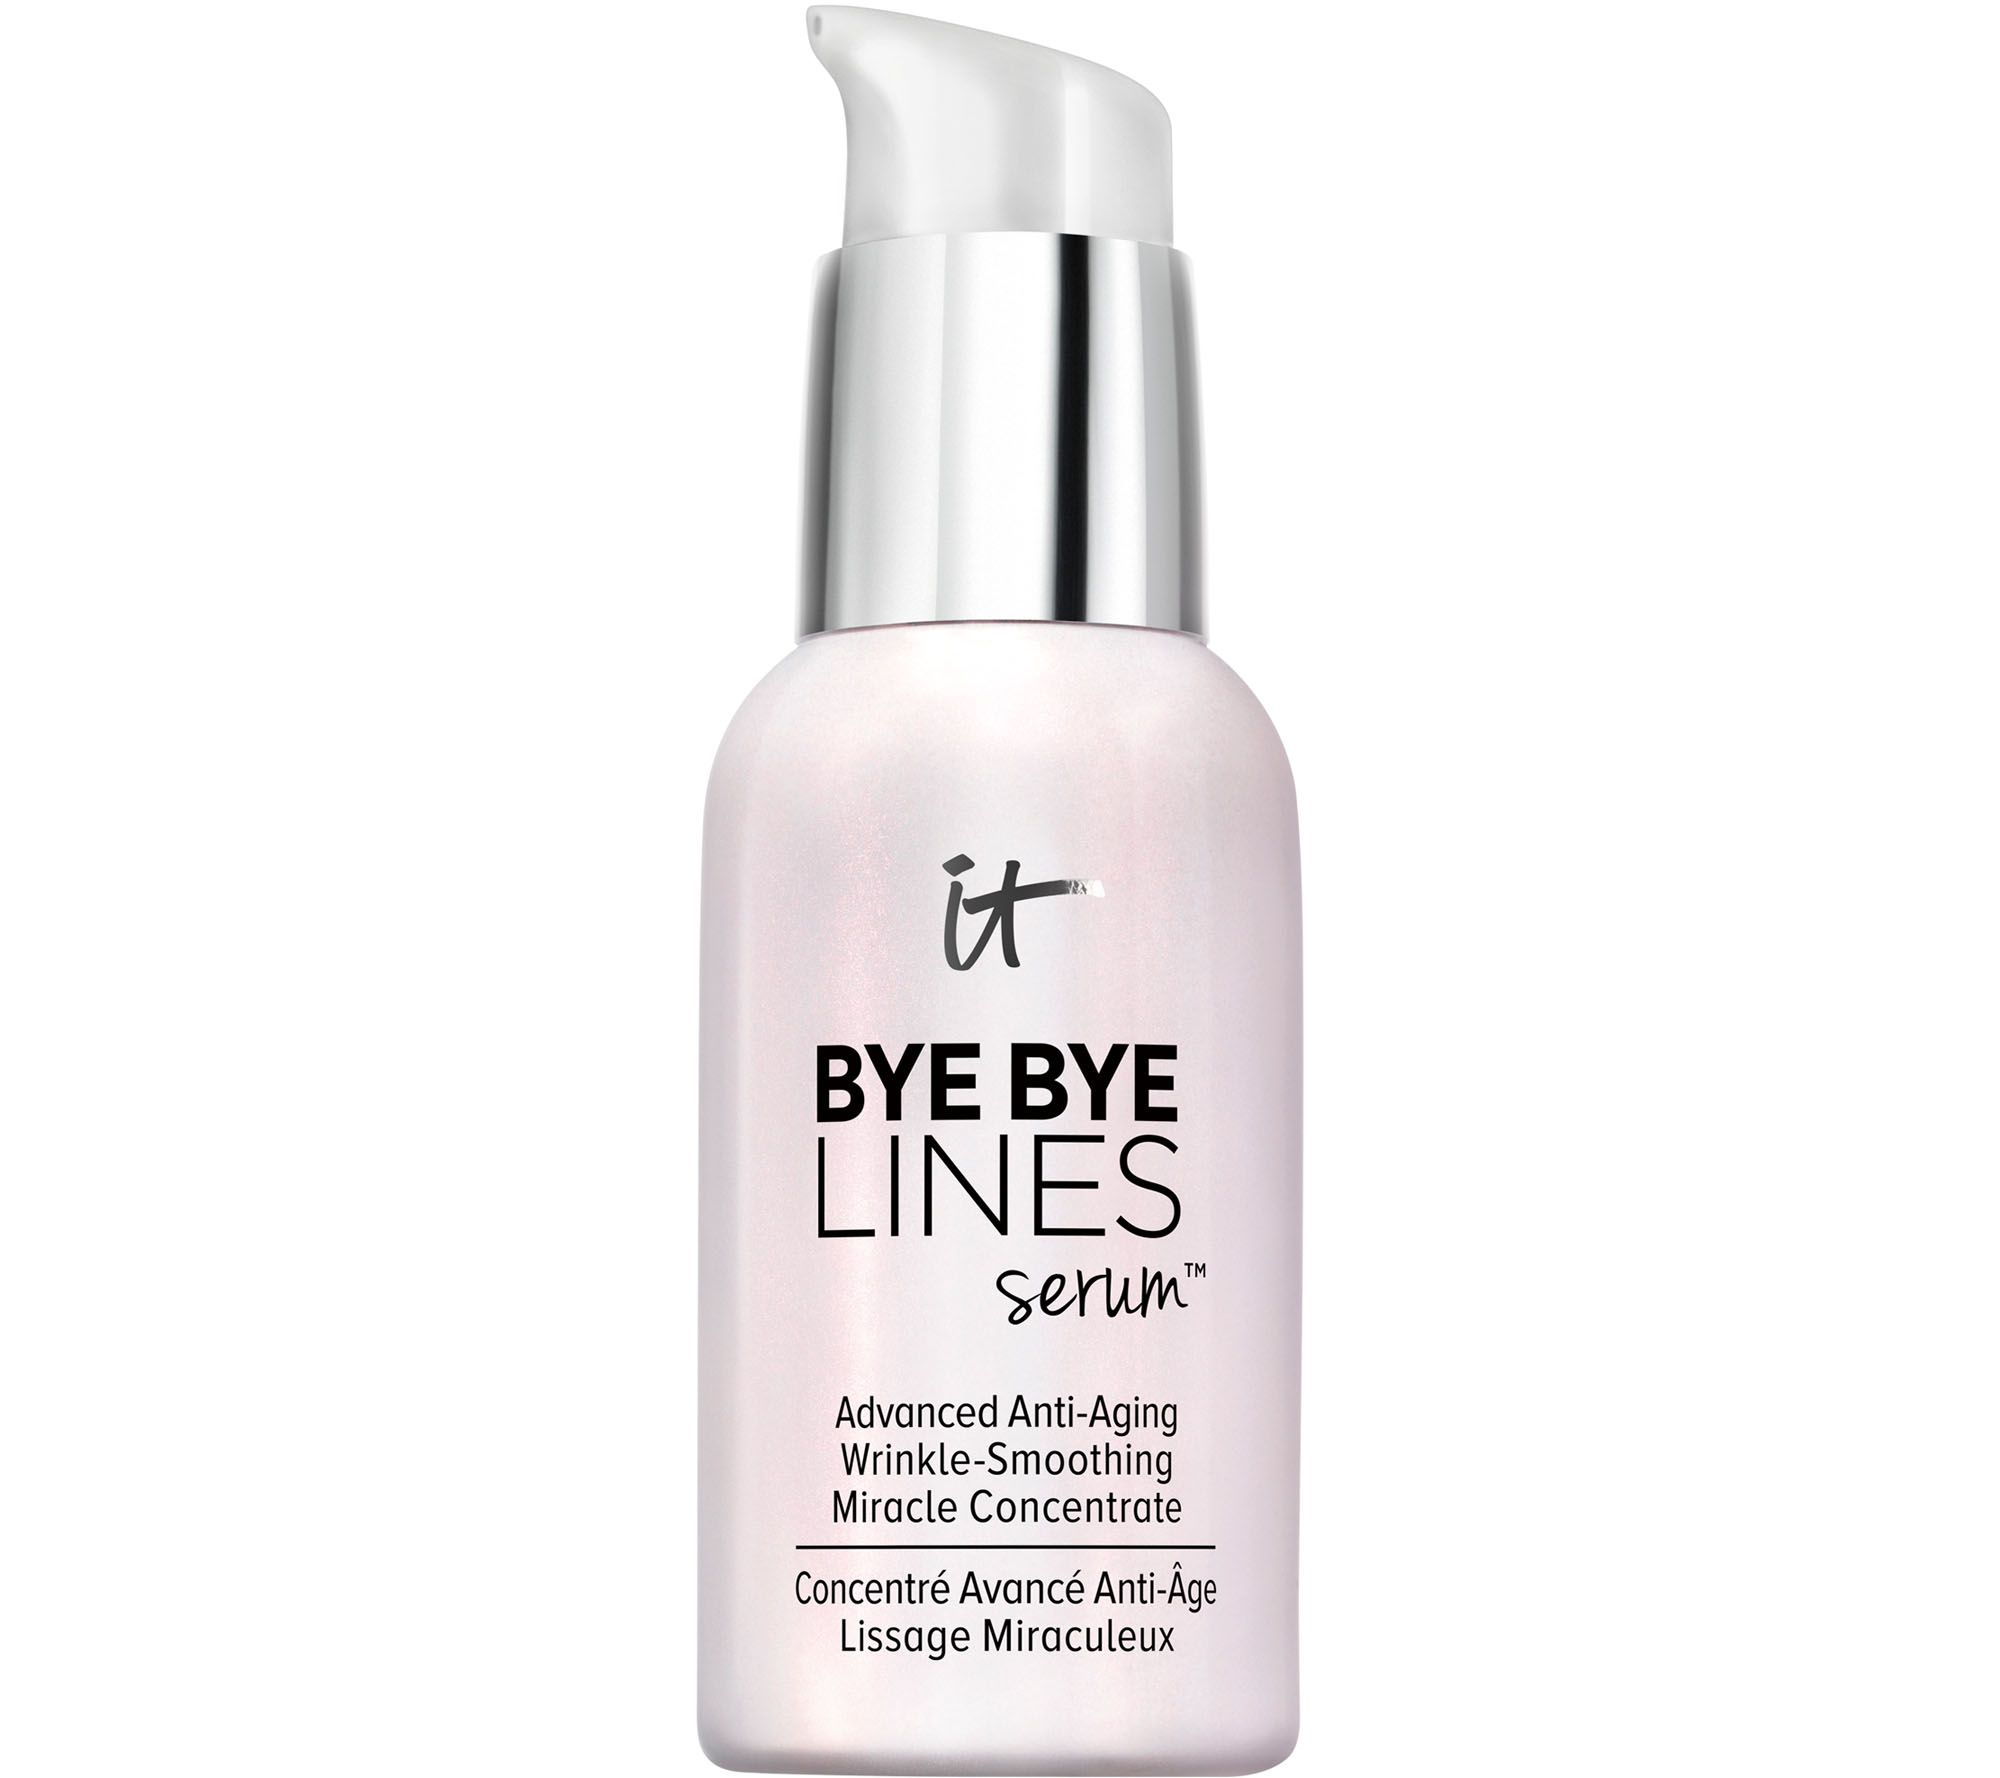 New customer qvc promo code - It Cosmetics Bye Bye Lines Advanced Anti Aging Smoothing Serum A286625